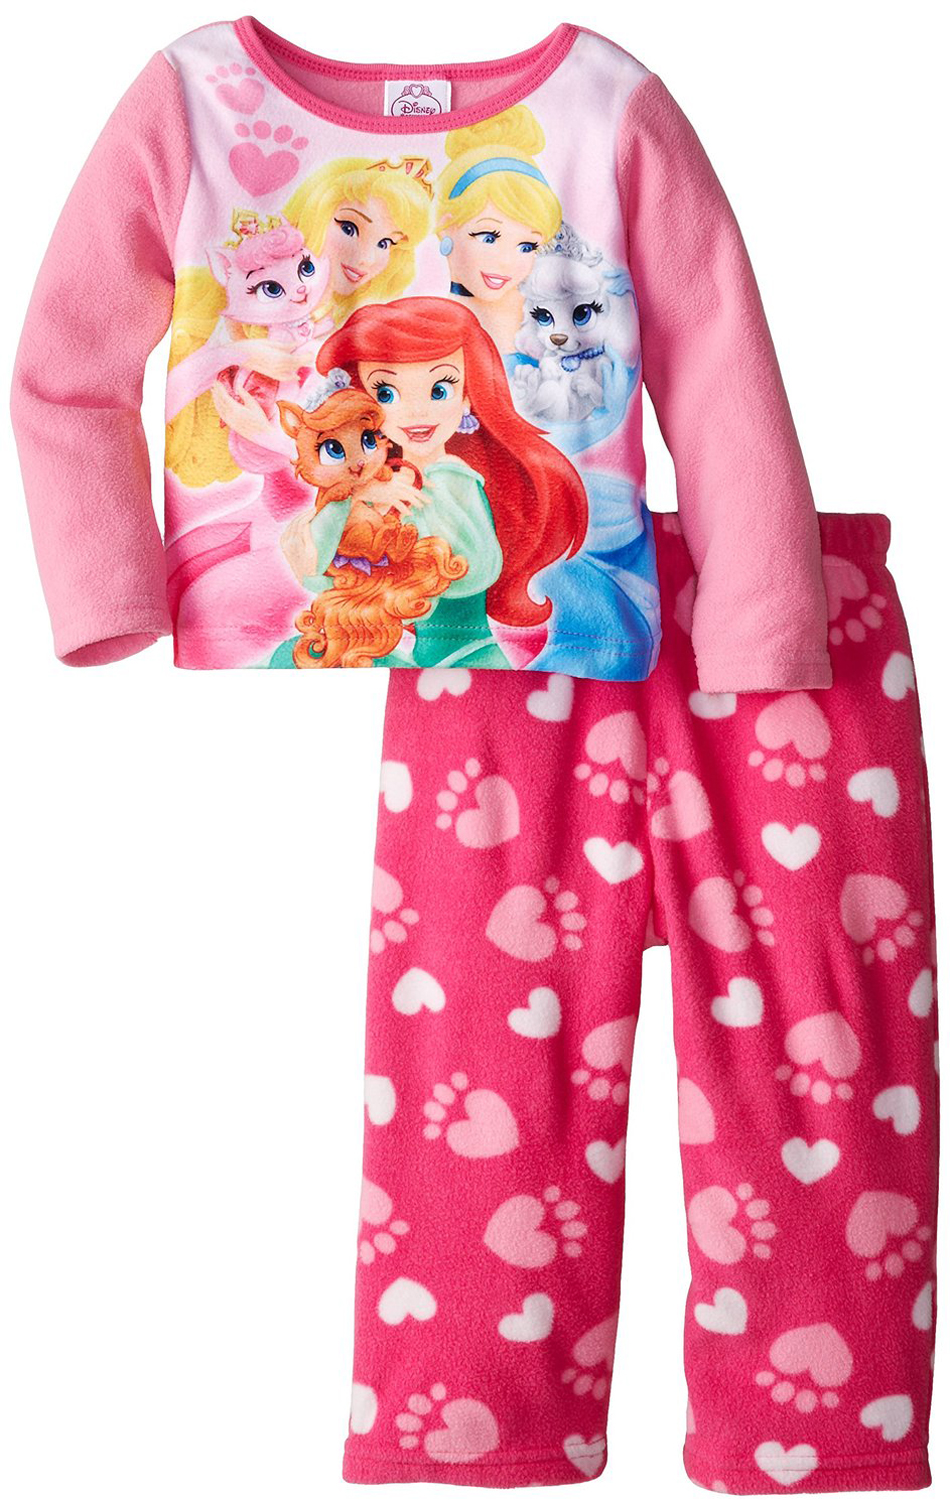 Disney Princess Little Girls' 2 Piece Palace Pets Polar Fleece Pajama Set at Sears.com